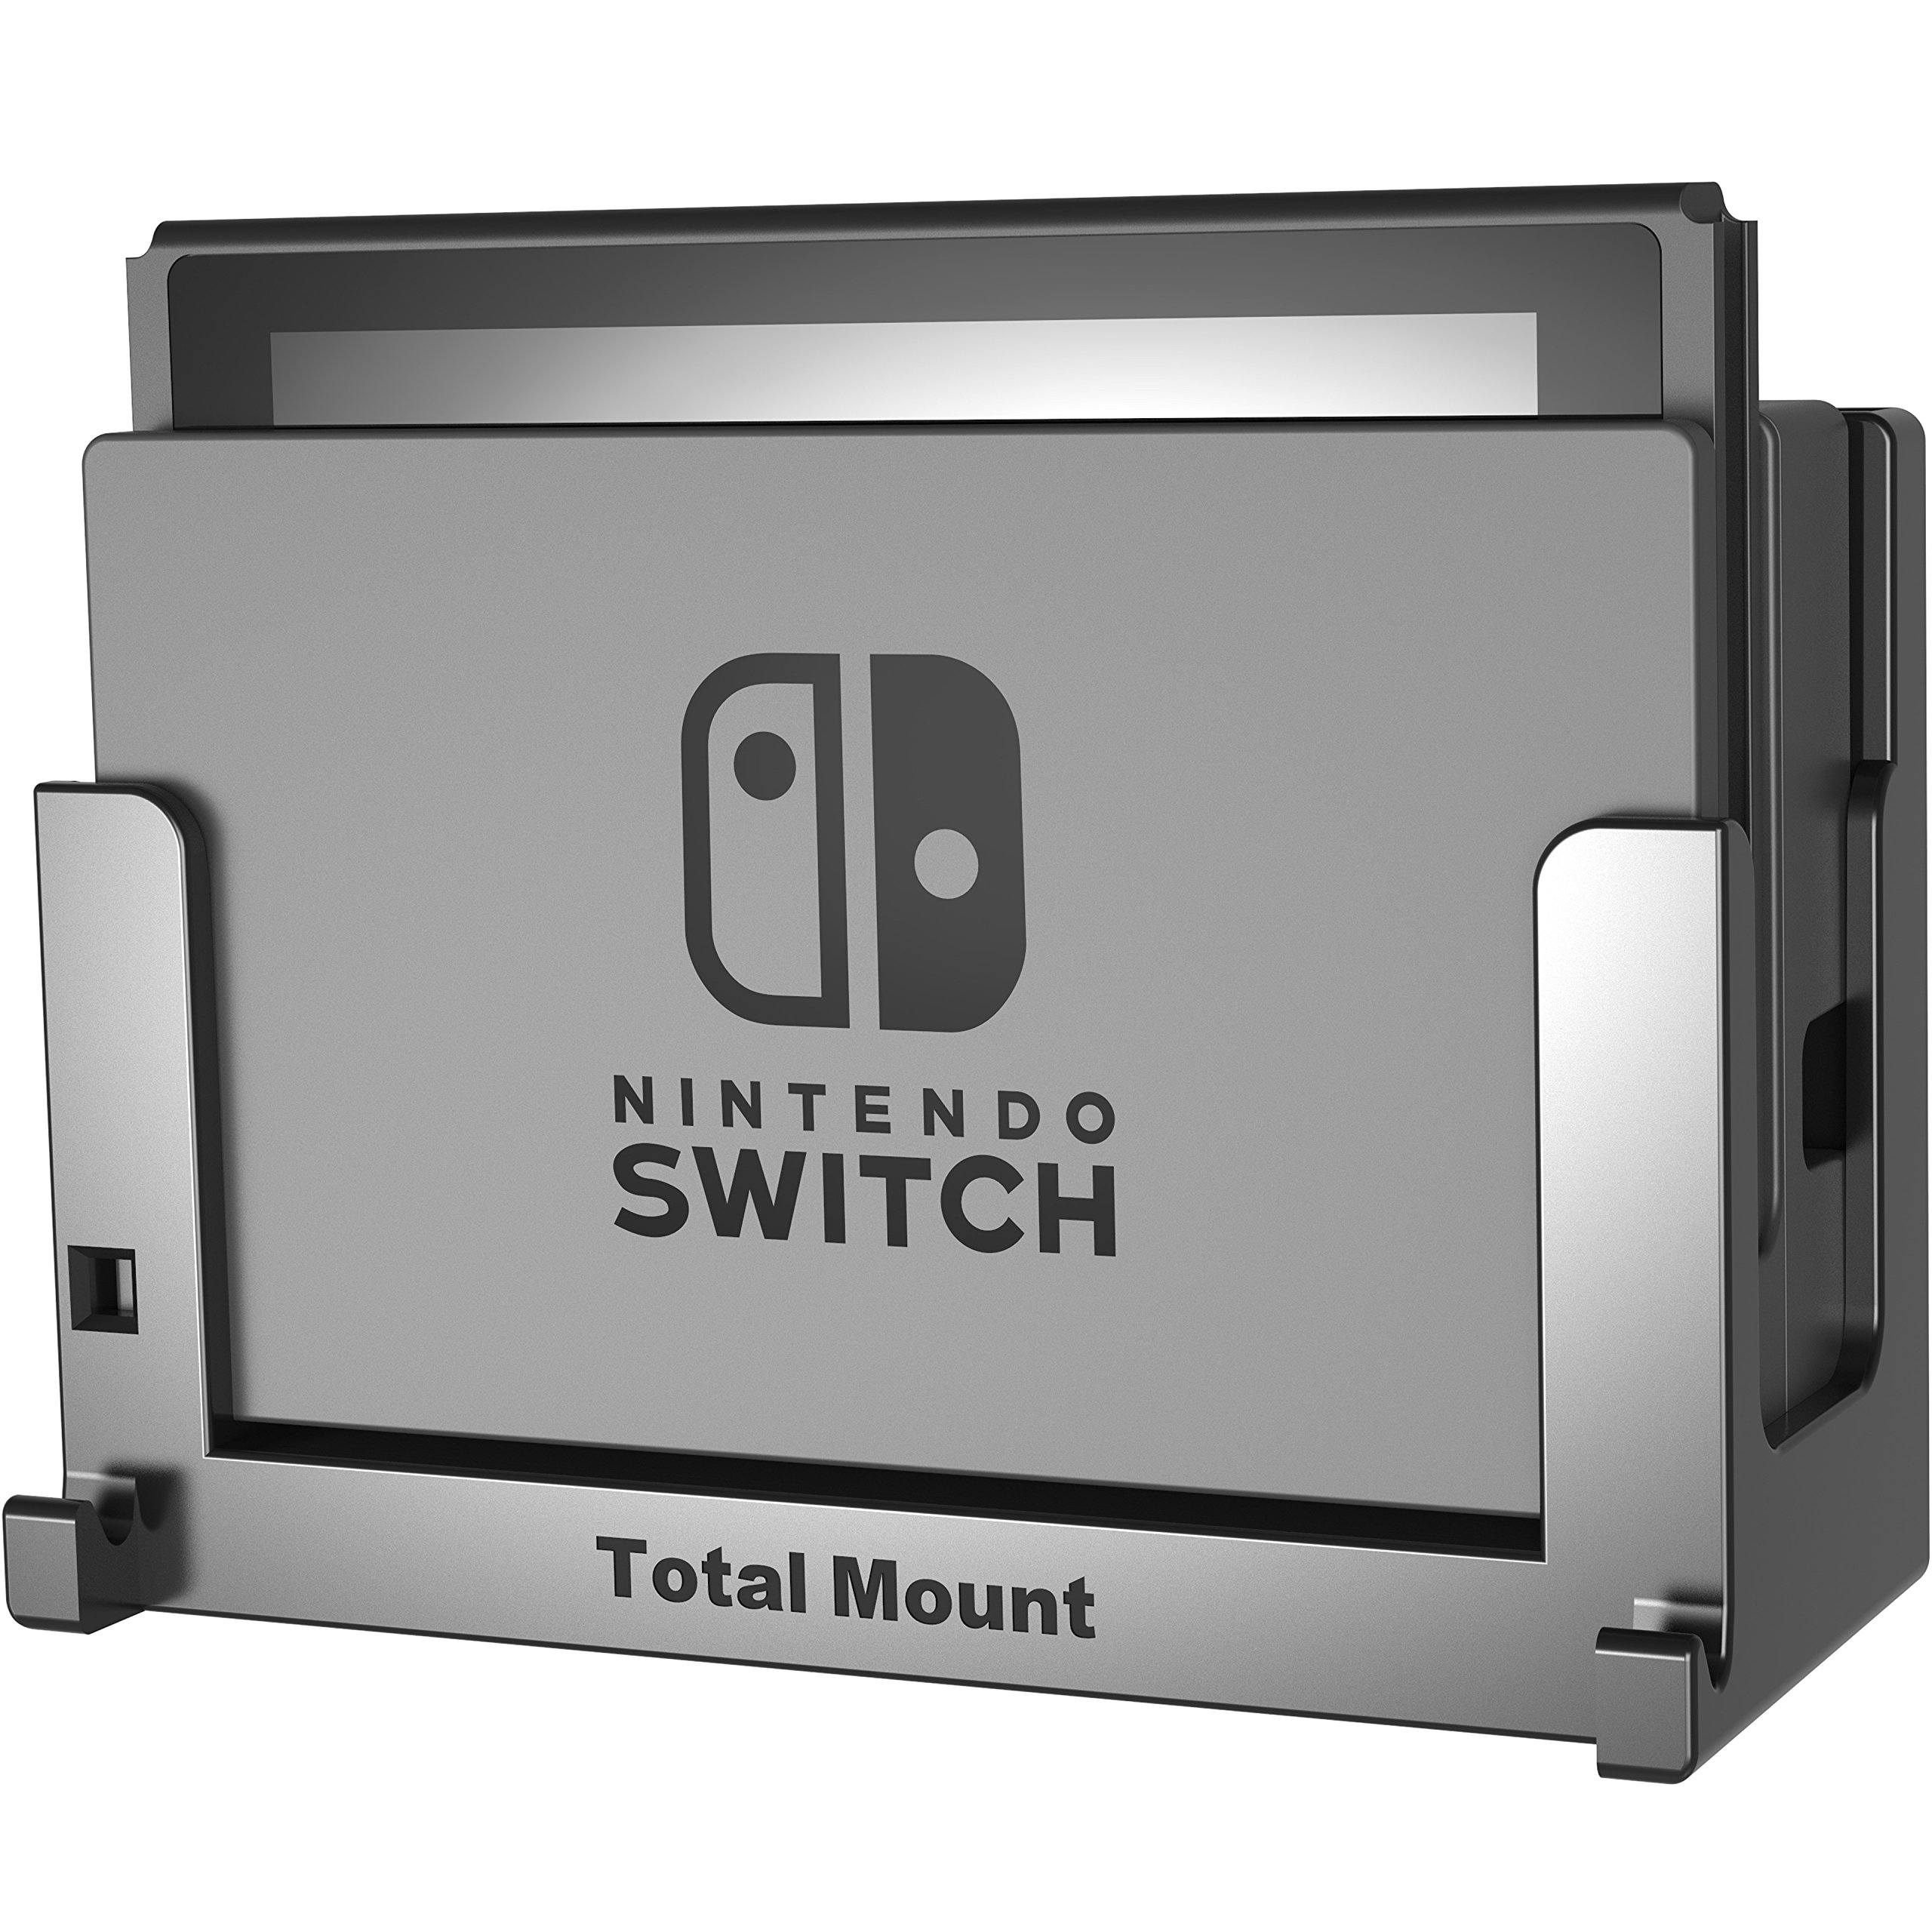 TotalMount for Nintendo Switch (Mounts Nintendo Switch on Wall Near TV) by TotalMount